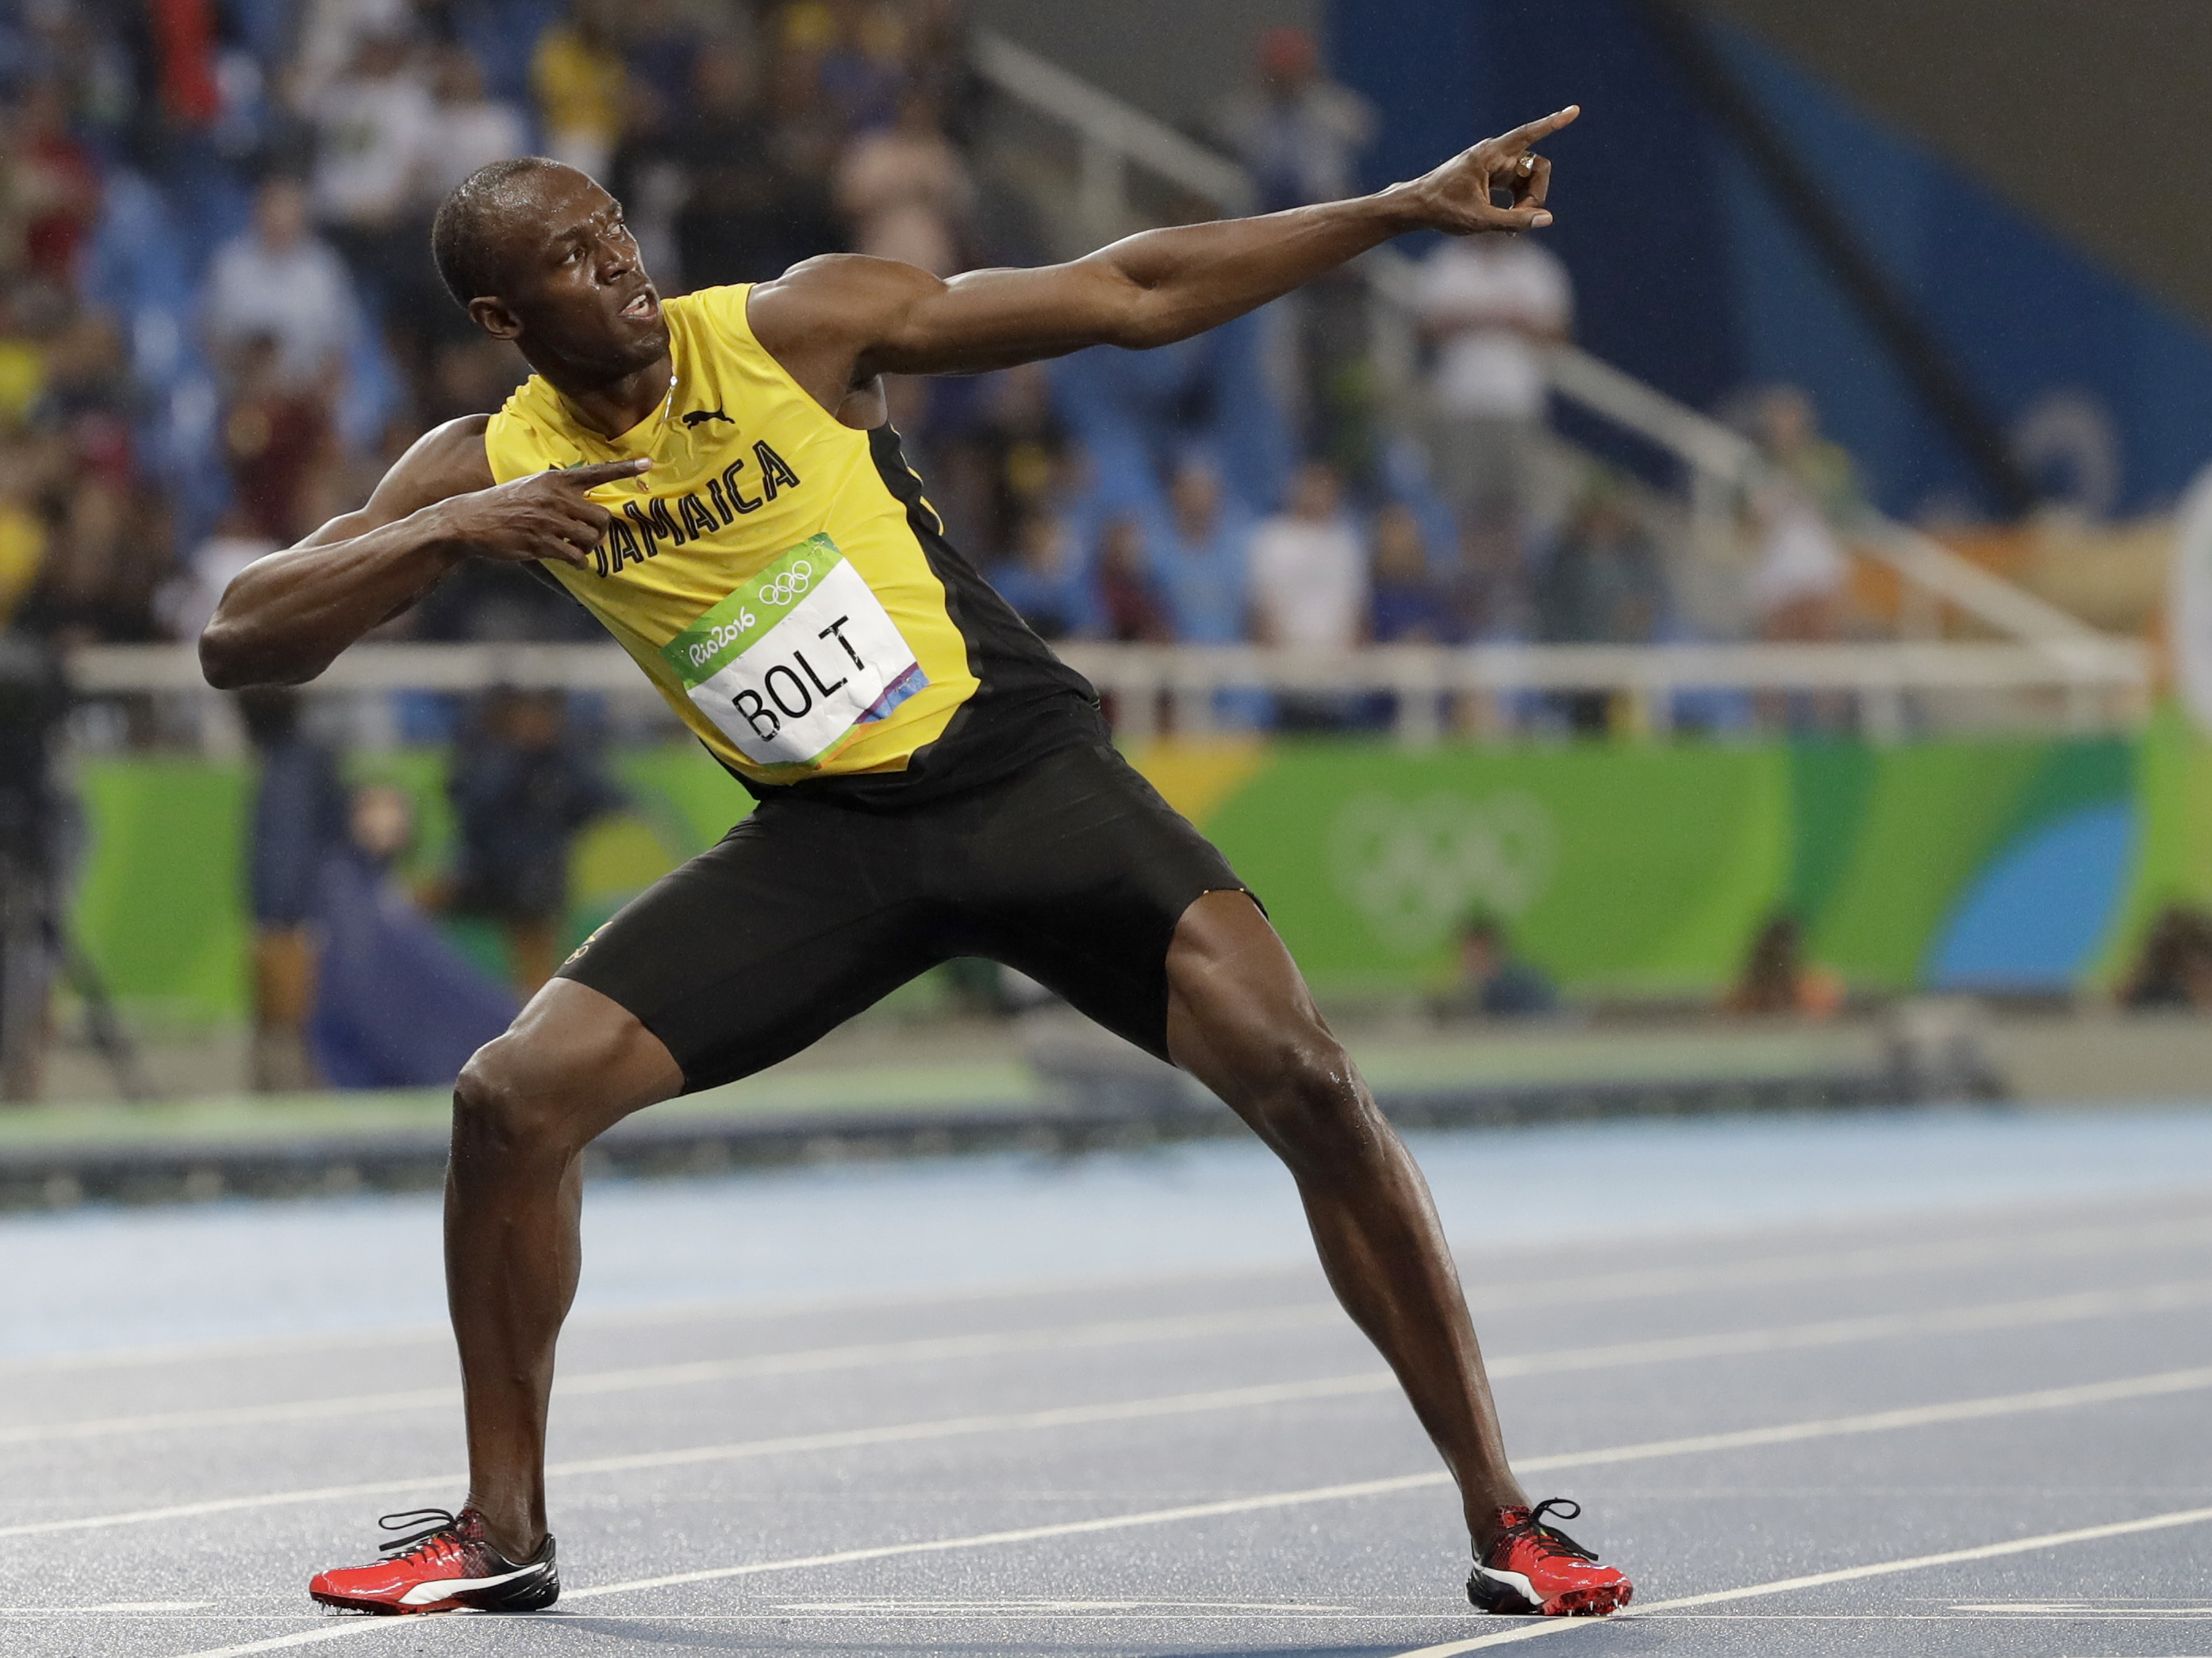 Usain Bolt's Final 100-Meter Race: 'There He Goes' | KRWG